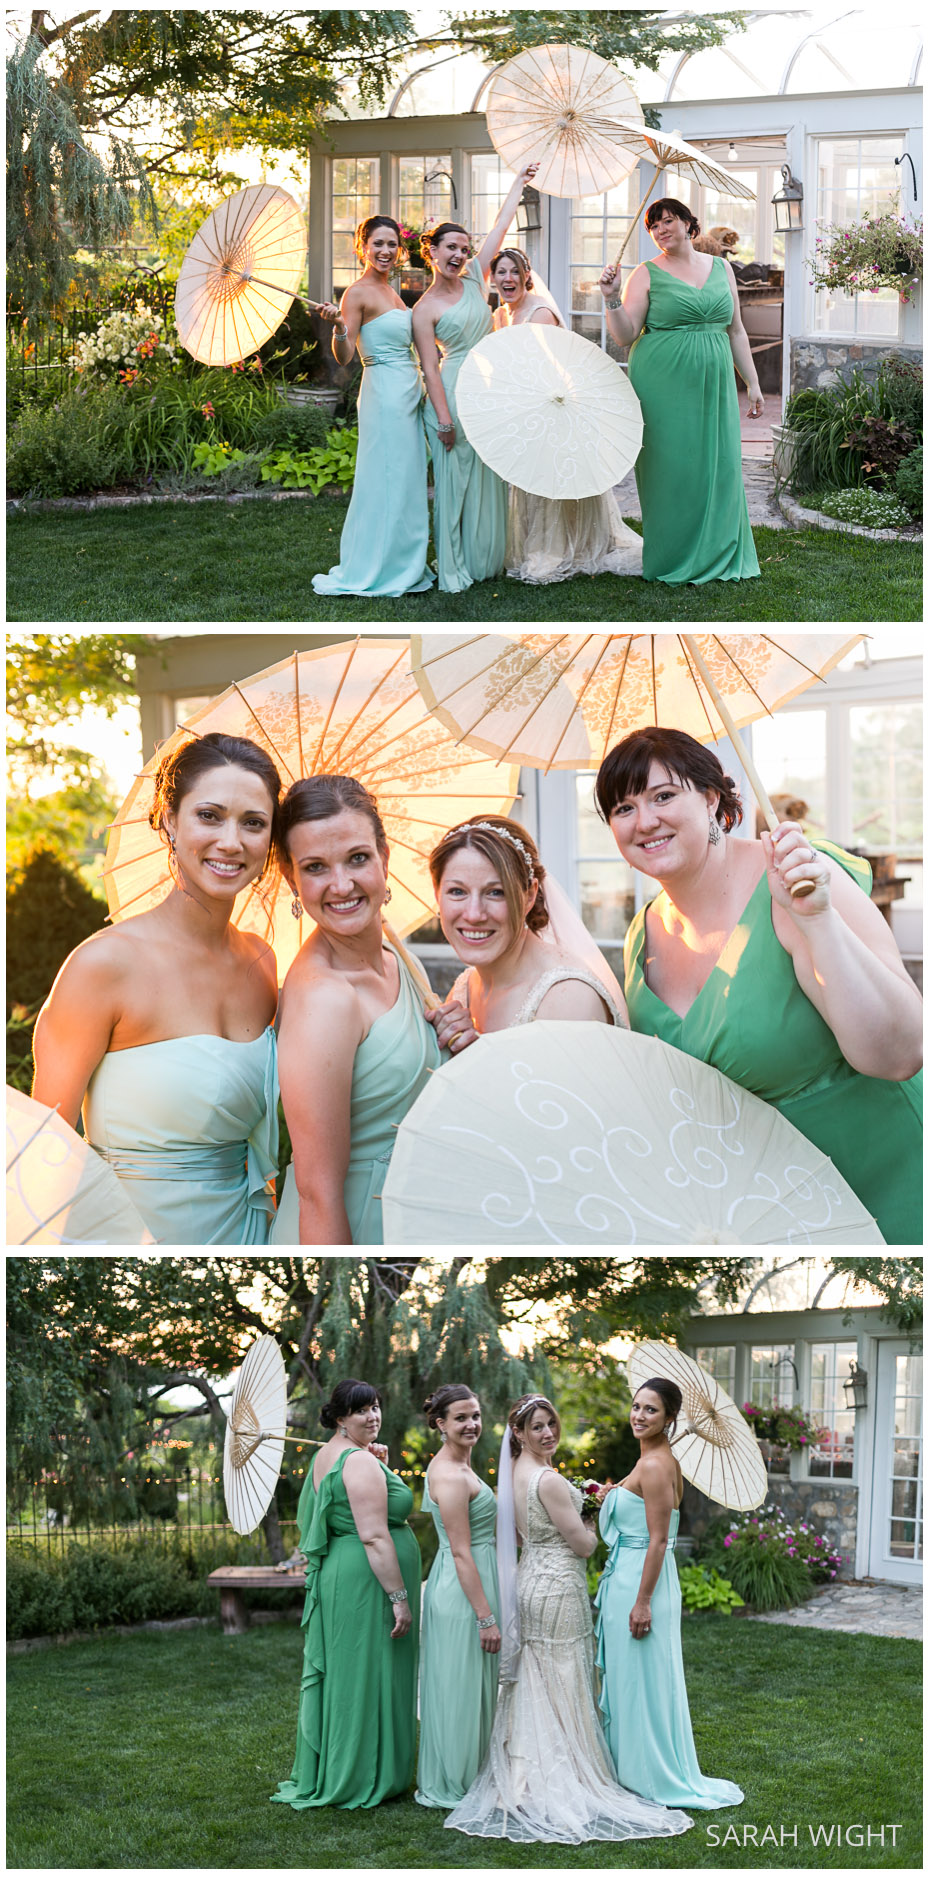 D27 Utah Bridesmaid Rustic Wedding Venue Wadley Farm.jpg